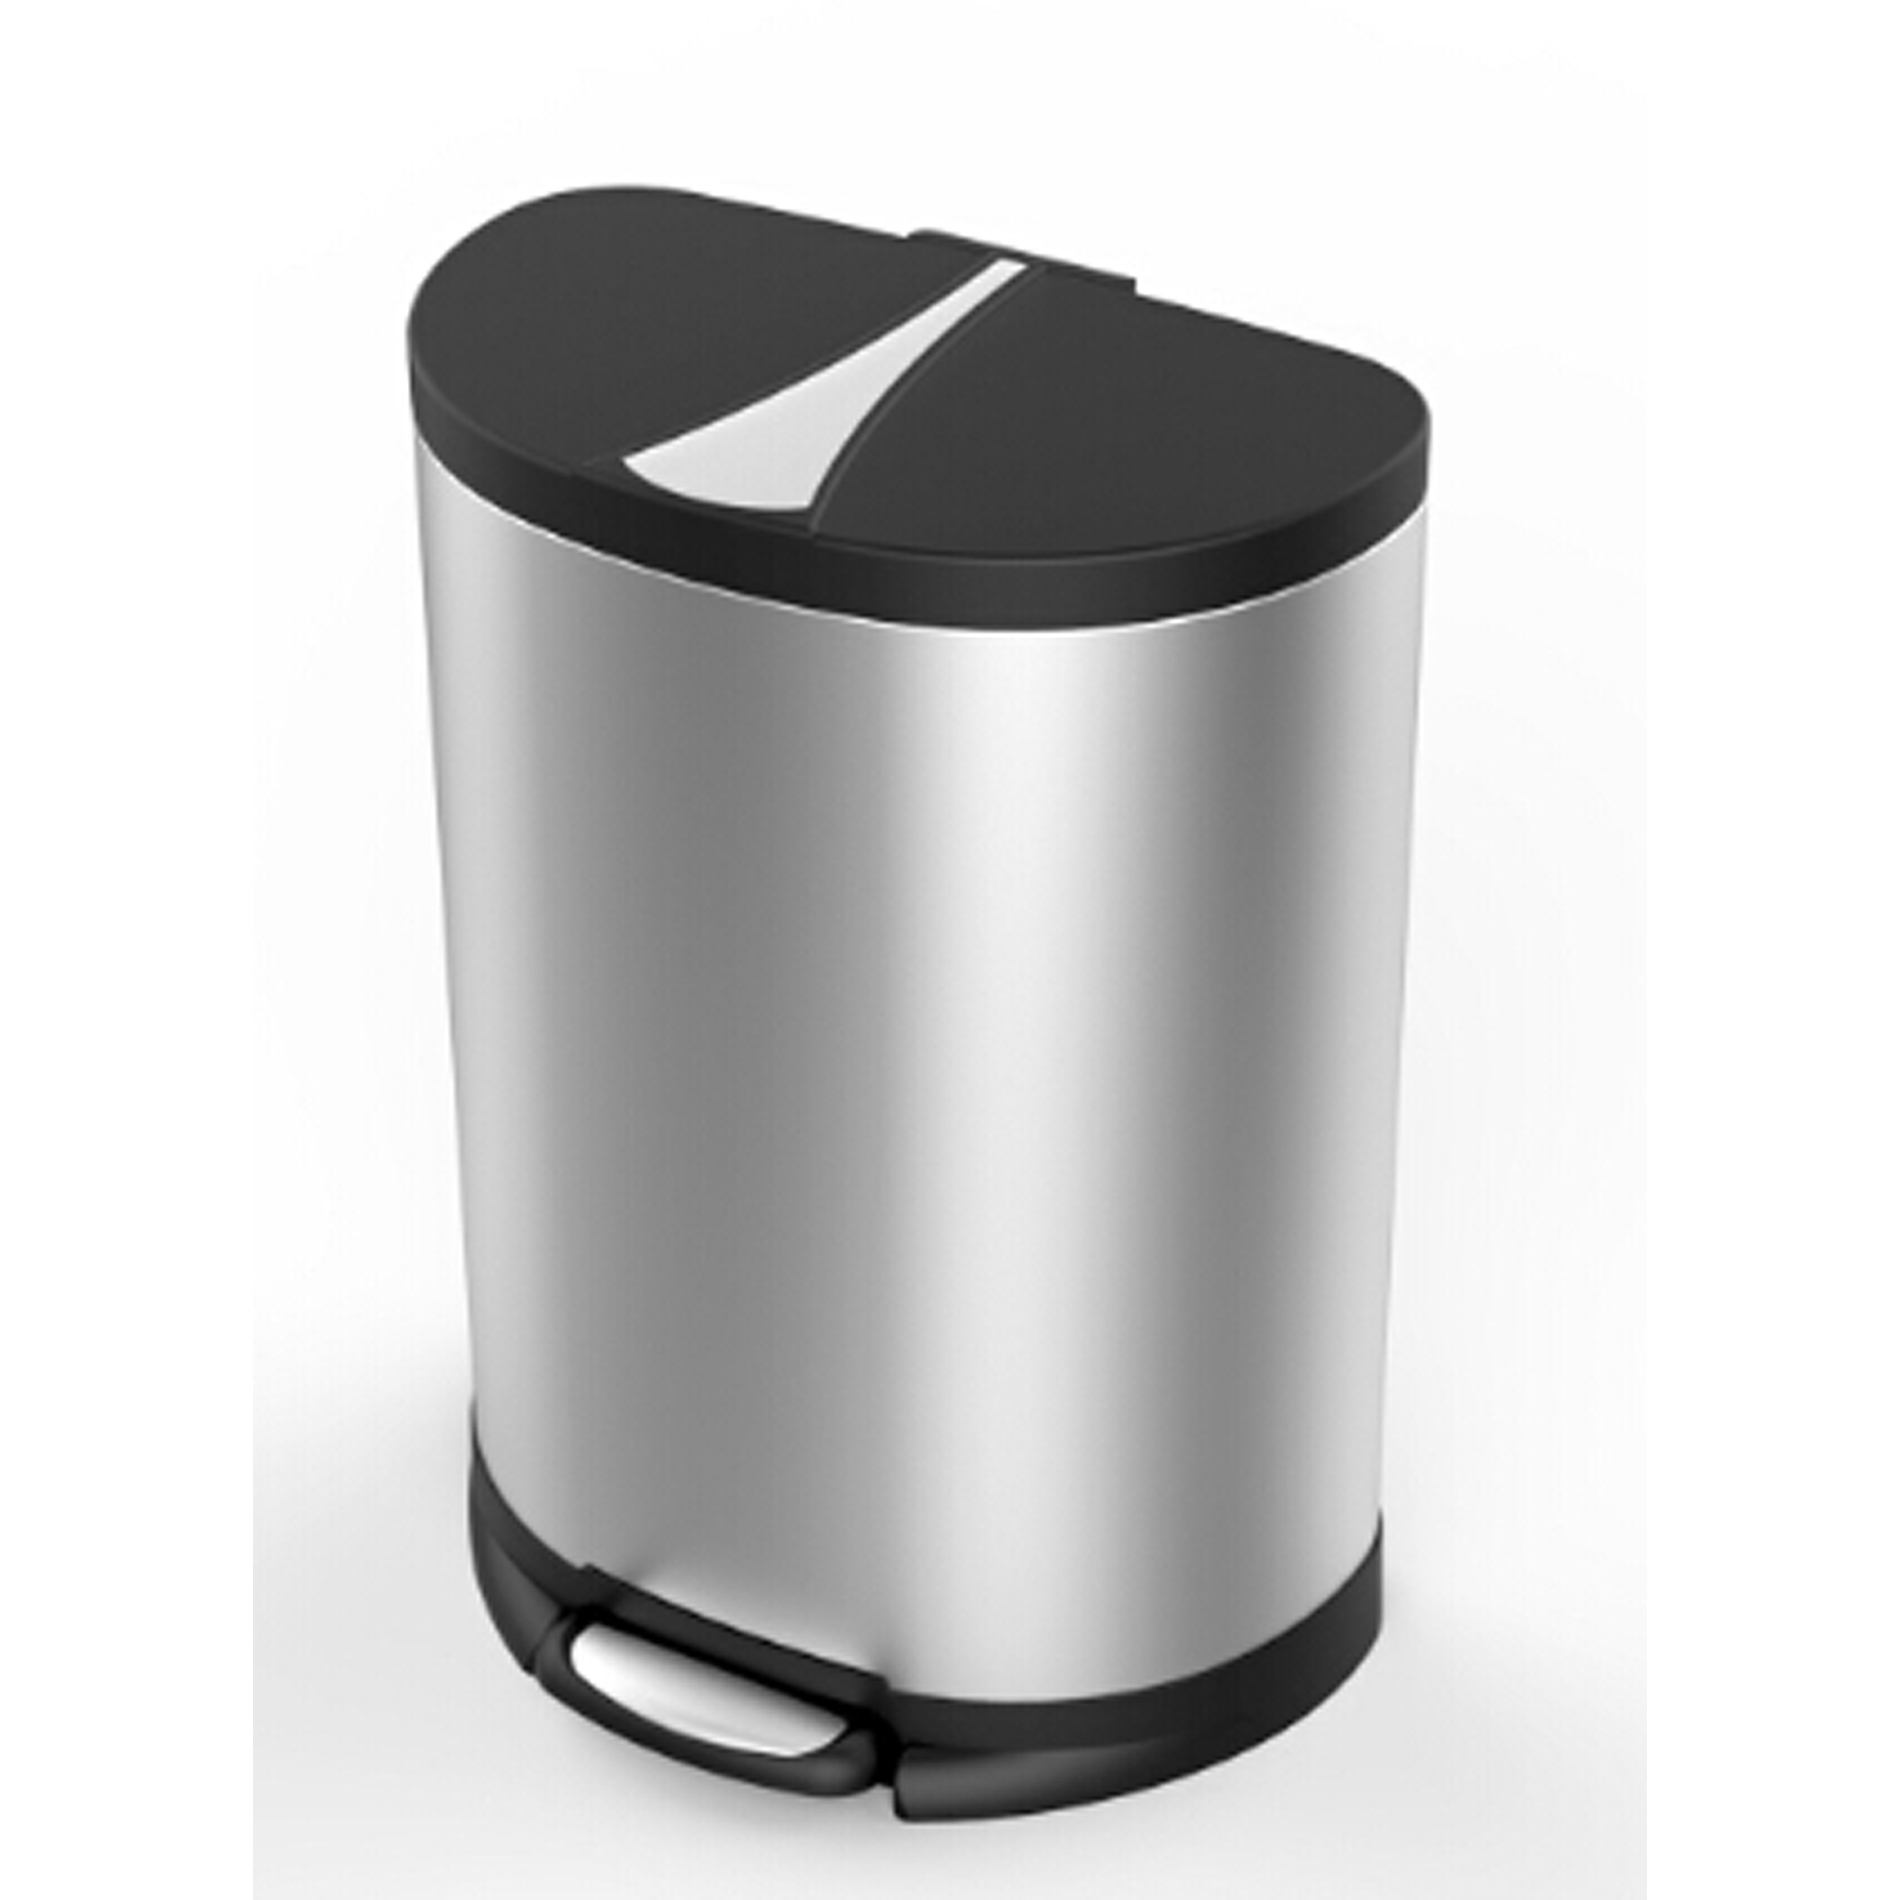 Metal Indoor Trash Can Check Out Essential Home 50 Liter Semi Round Stainless Steel Trash Can Shopyourway